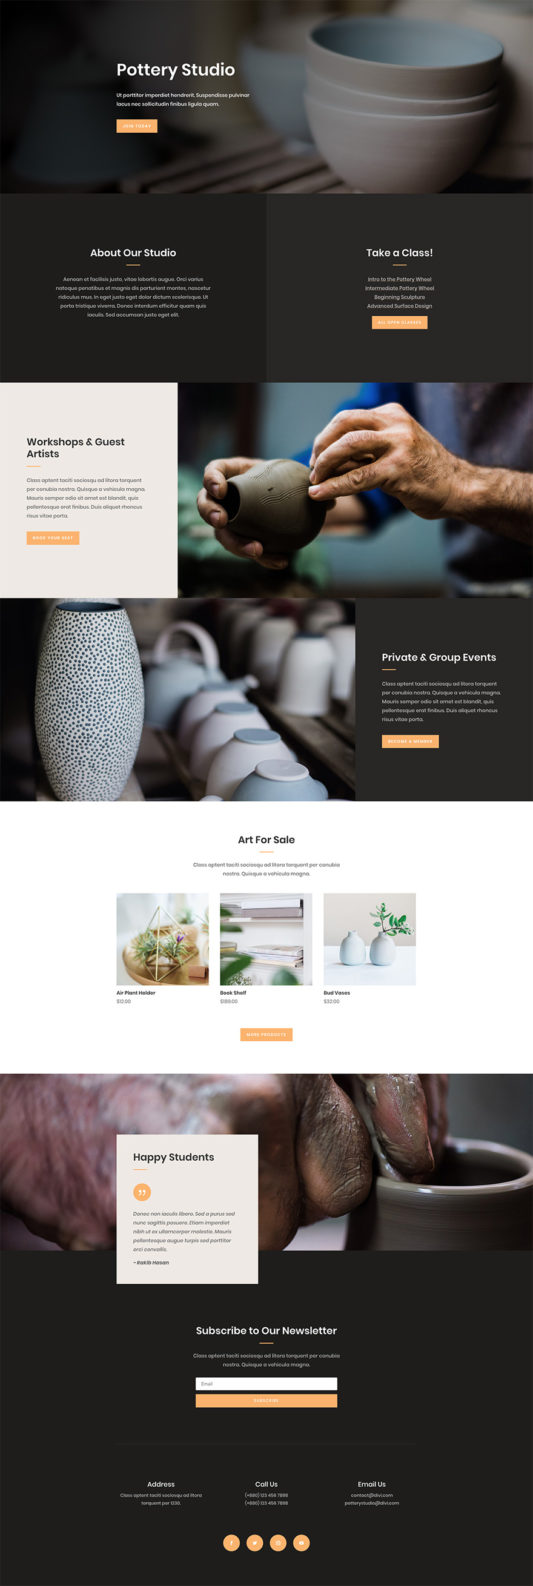 Pottery Studio Landing Page